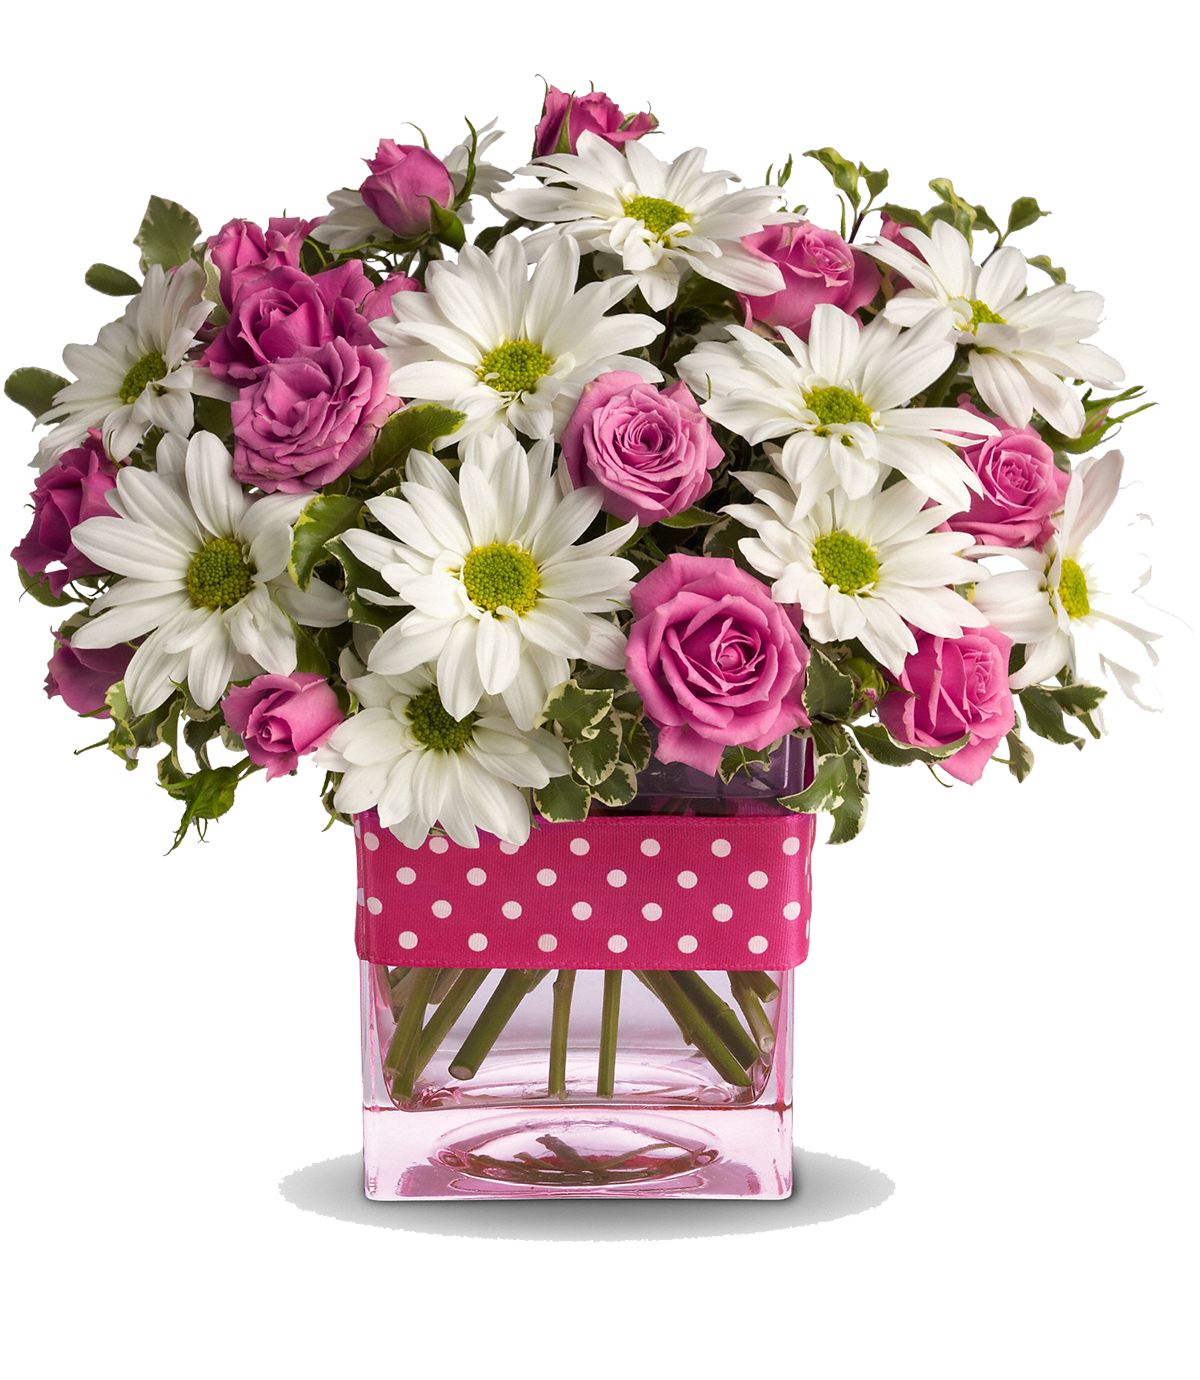 Flower bouquet png transparent. Congratulation images all free